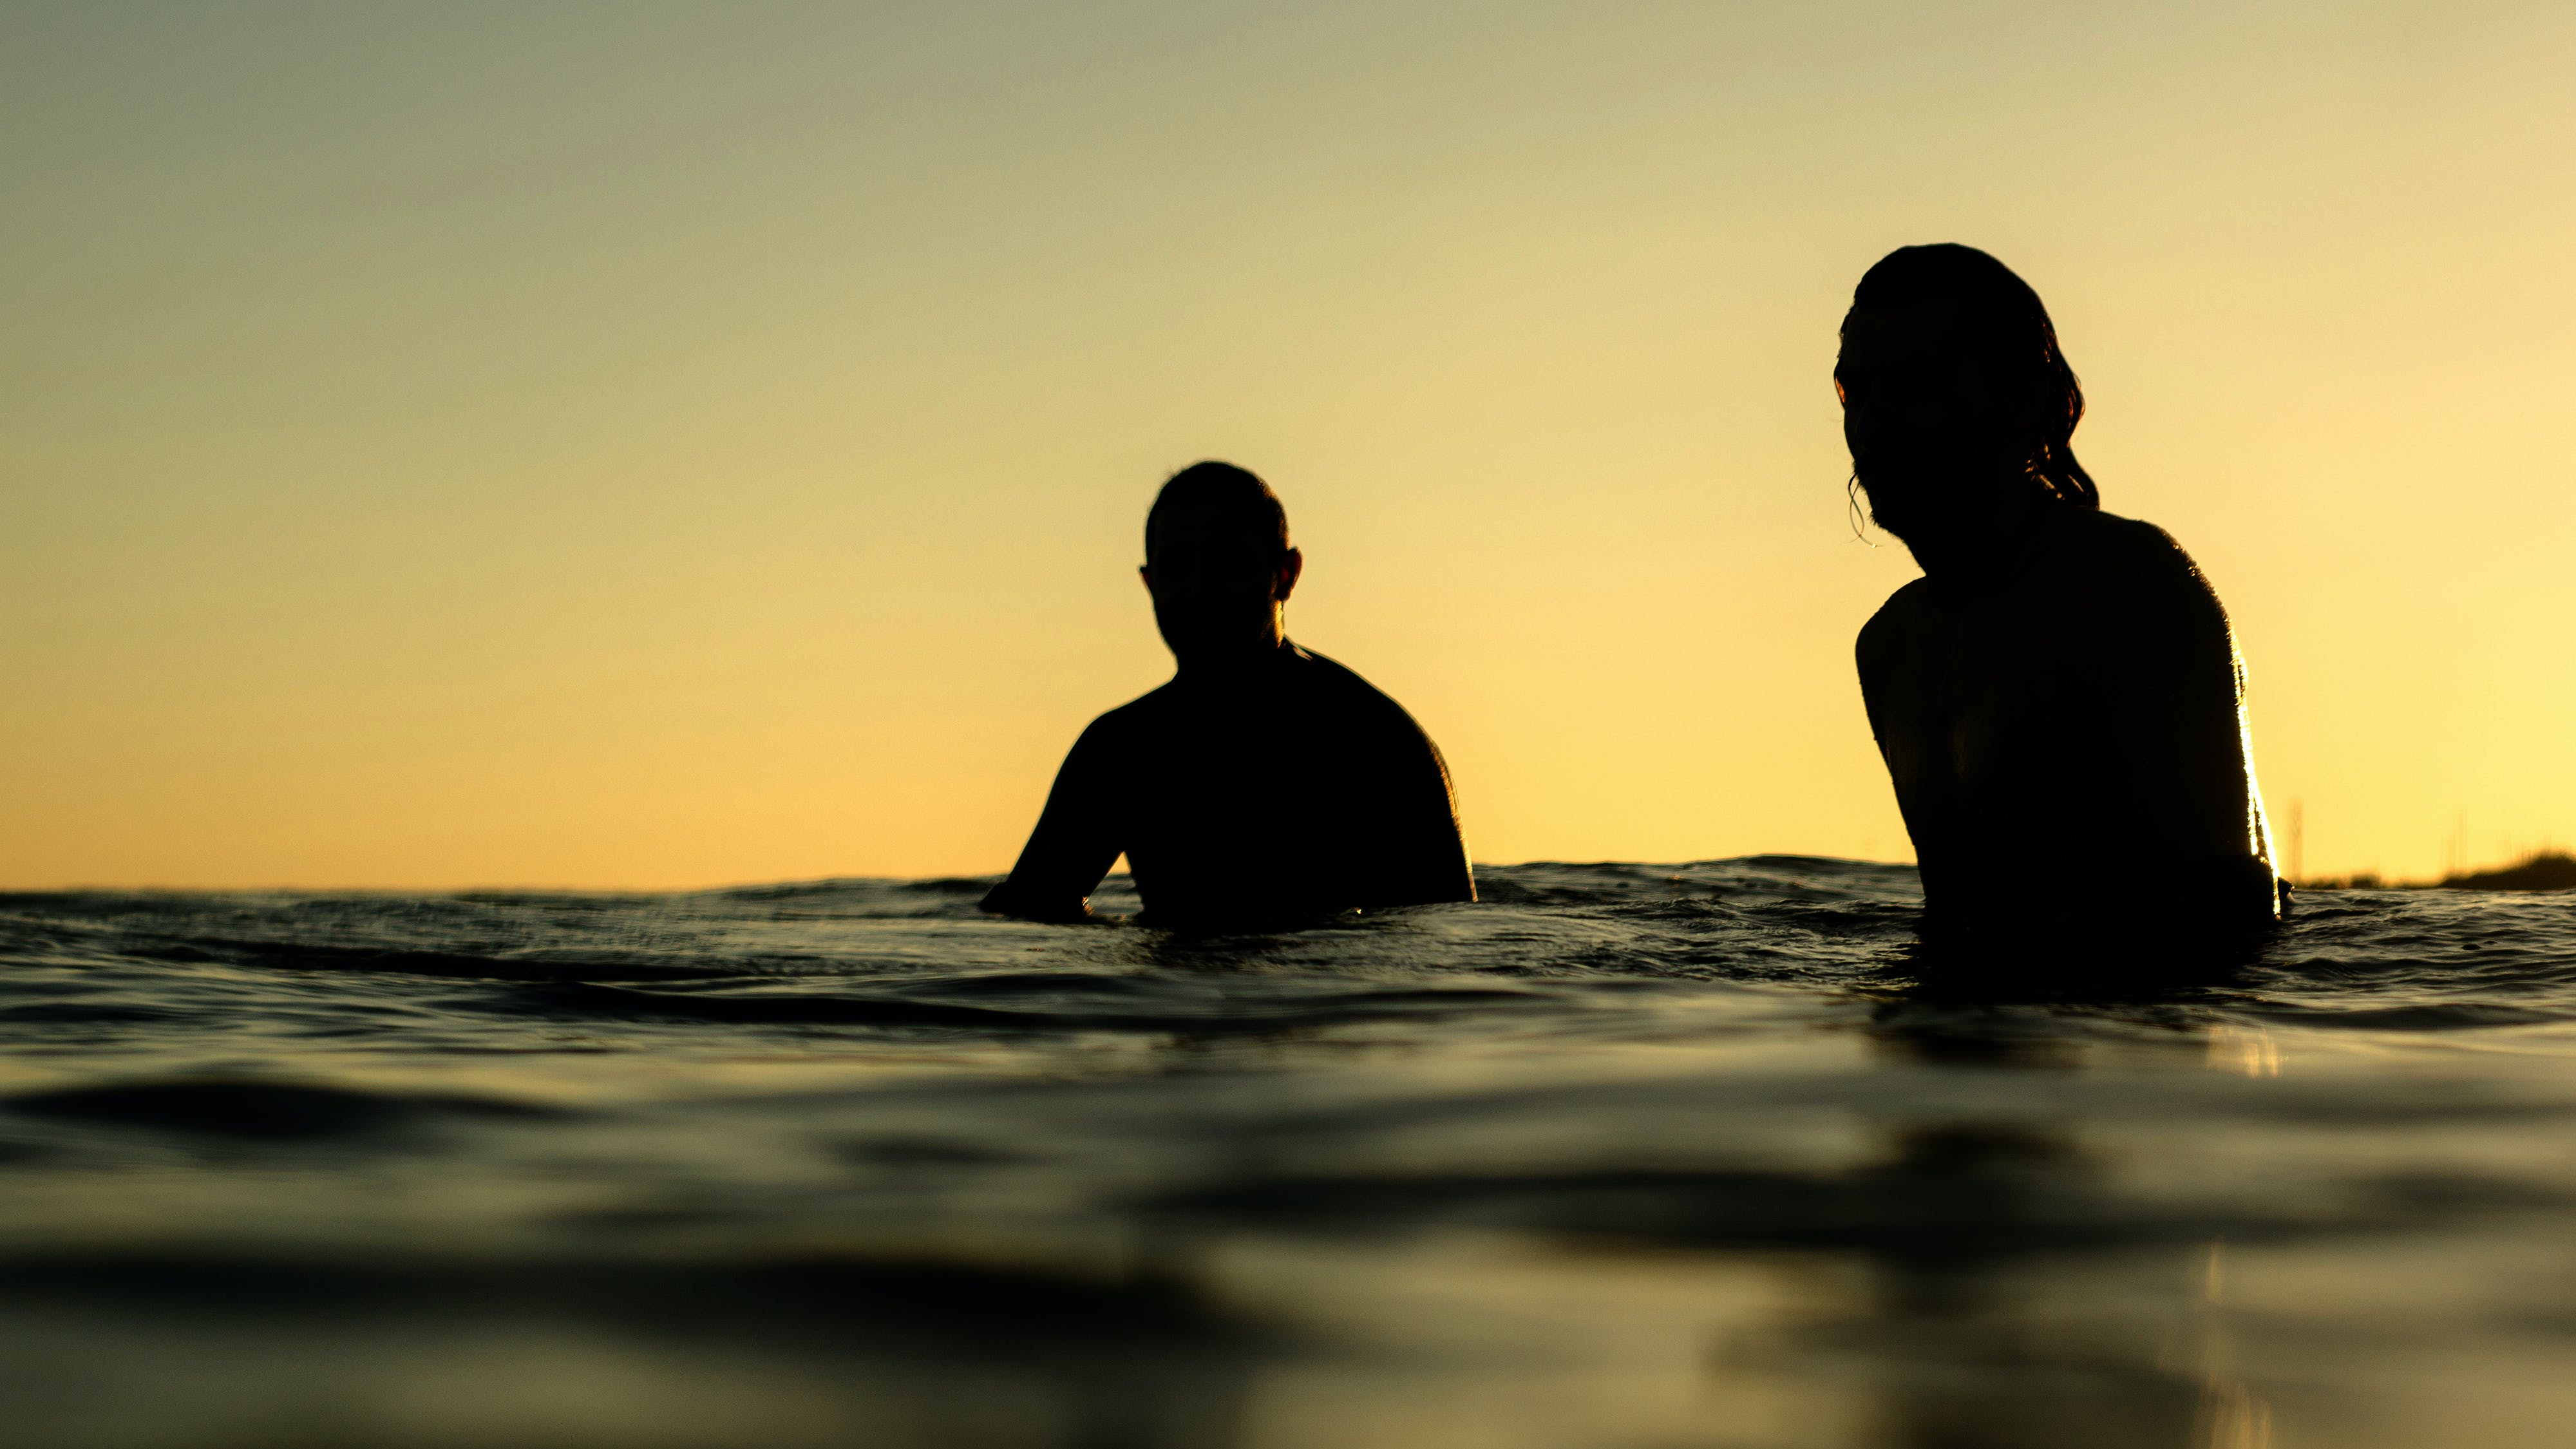 Silhouette of Two Person in Water